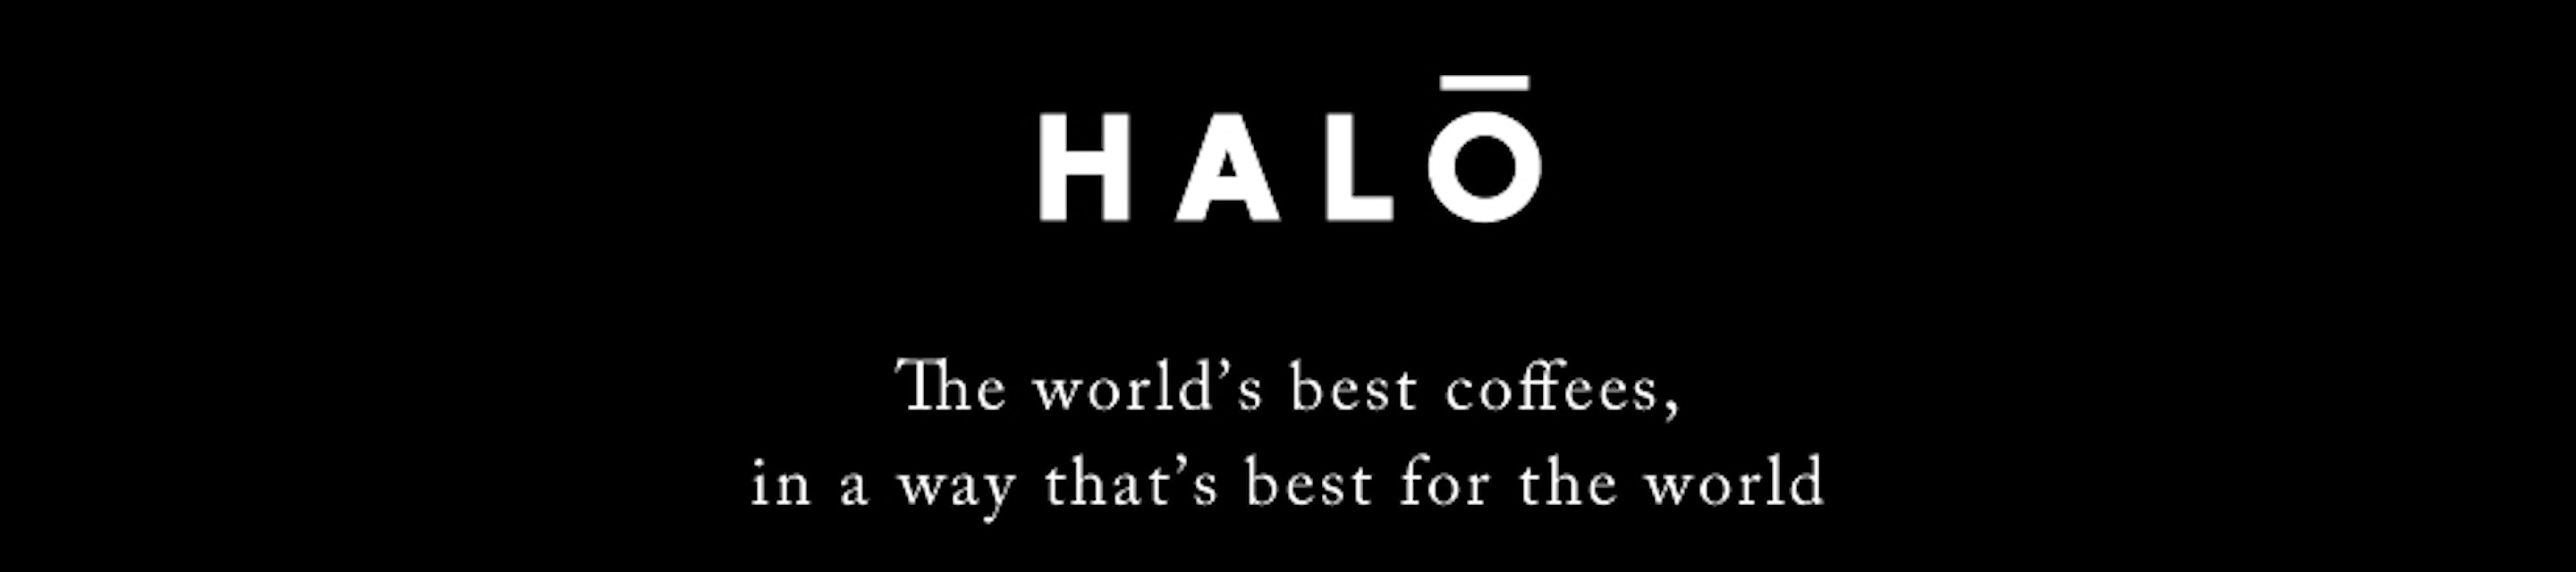 Halo Coffee hero image